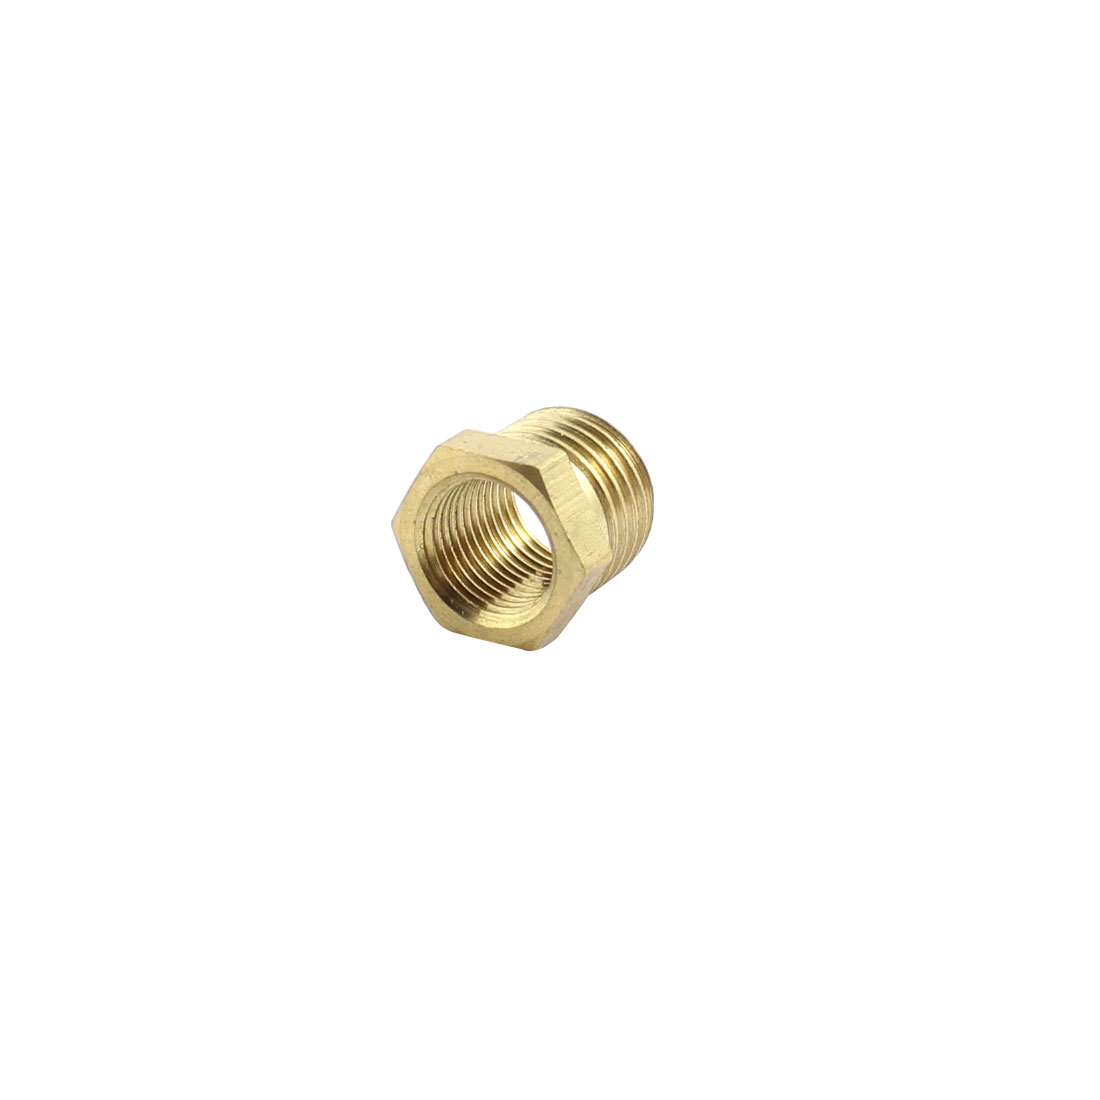 UXCELL 1/4Pt To 1/8Pt Male/Female Thread Air Hose Tube Fittings Hex Head Socket Pipe Adapter Plug Caps hex bushing 1 2 pt female threaded straight oil air pipe connector